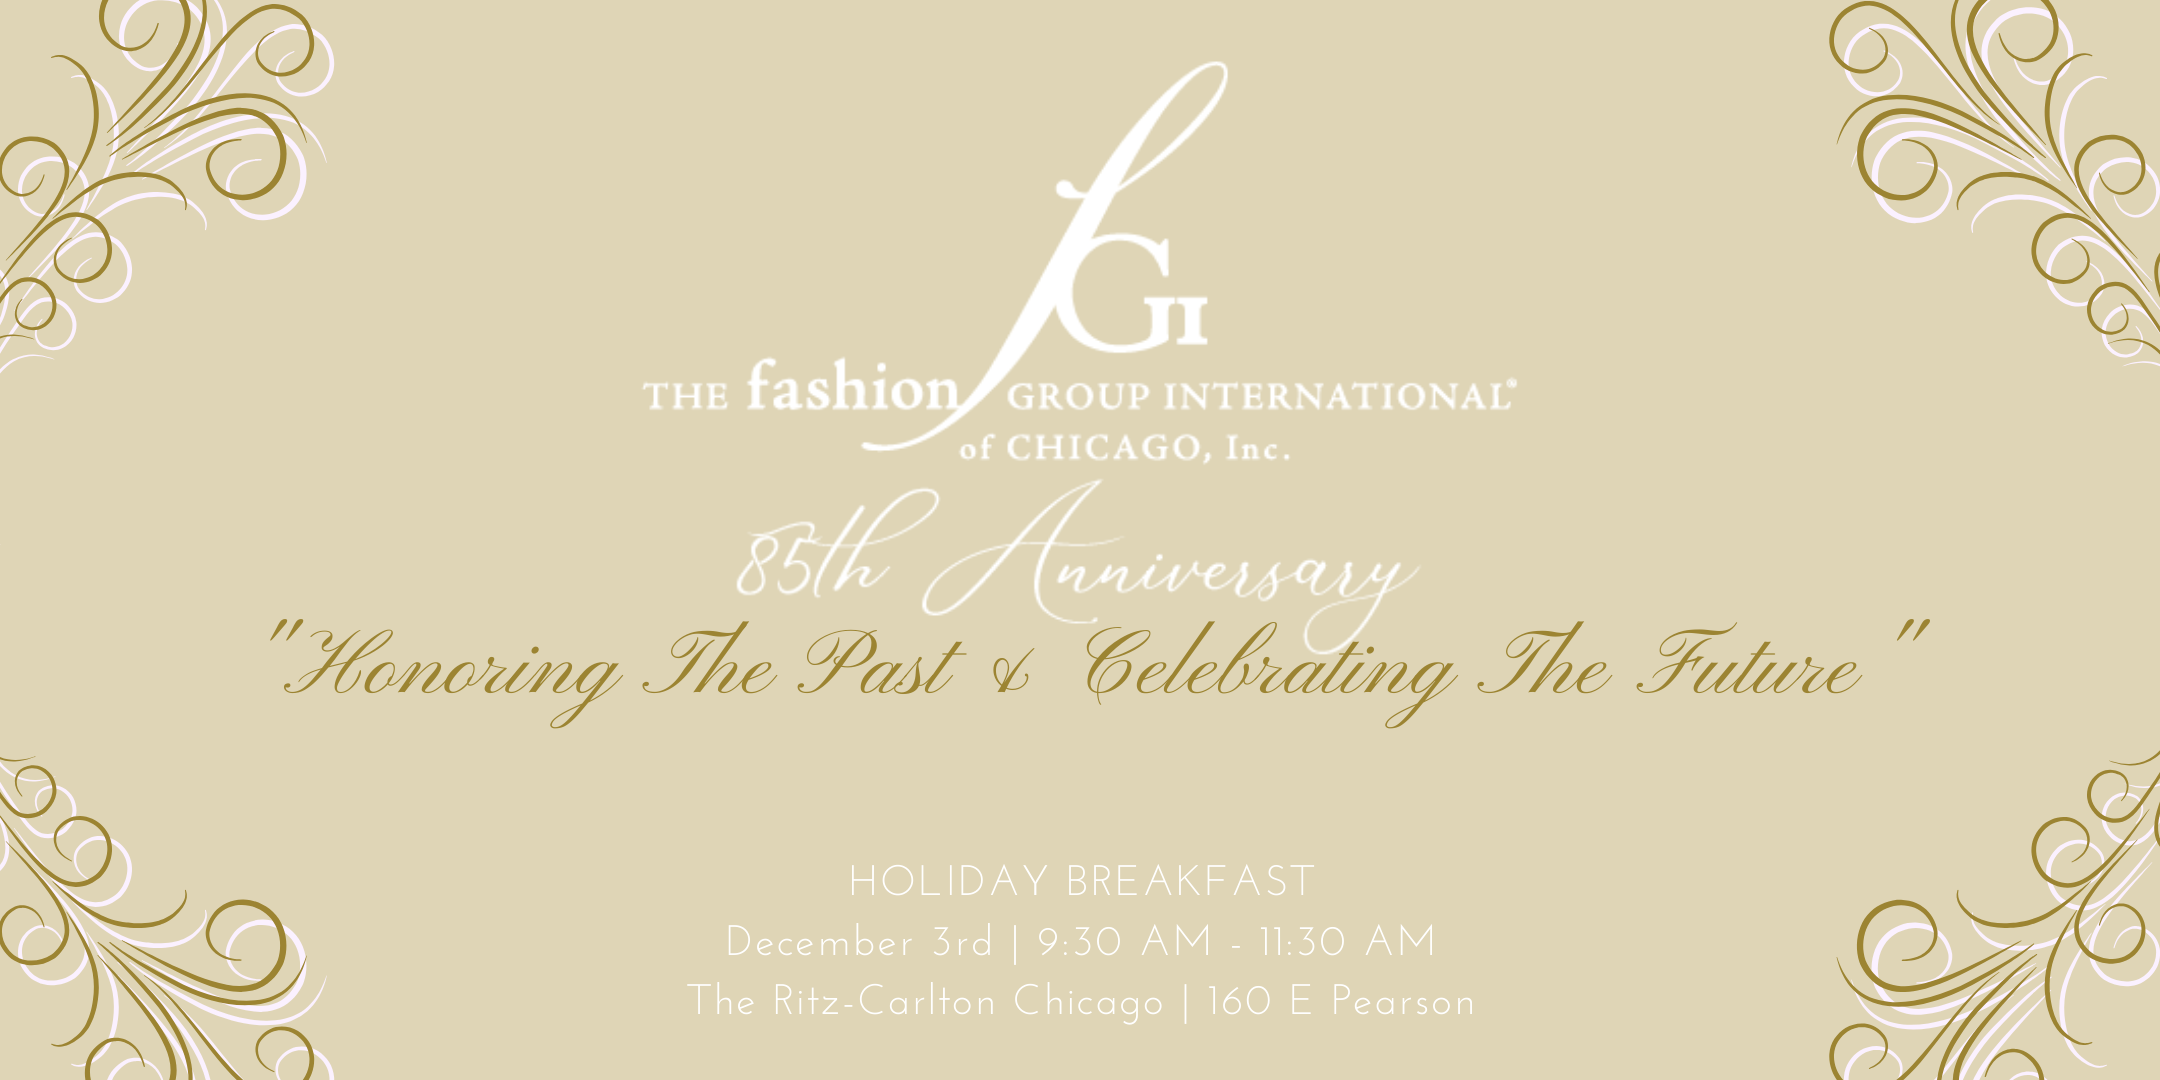 fgi chicago event 85th anniversary holiday Tea party